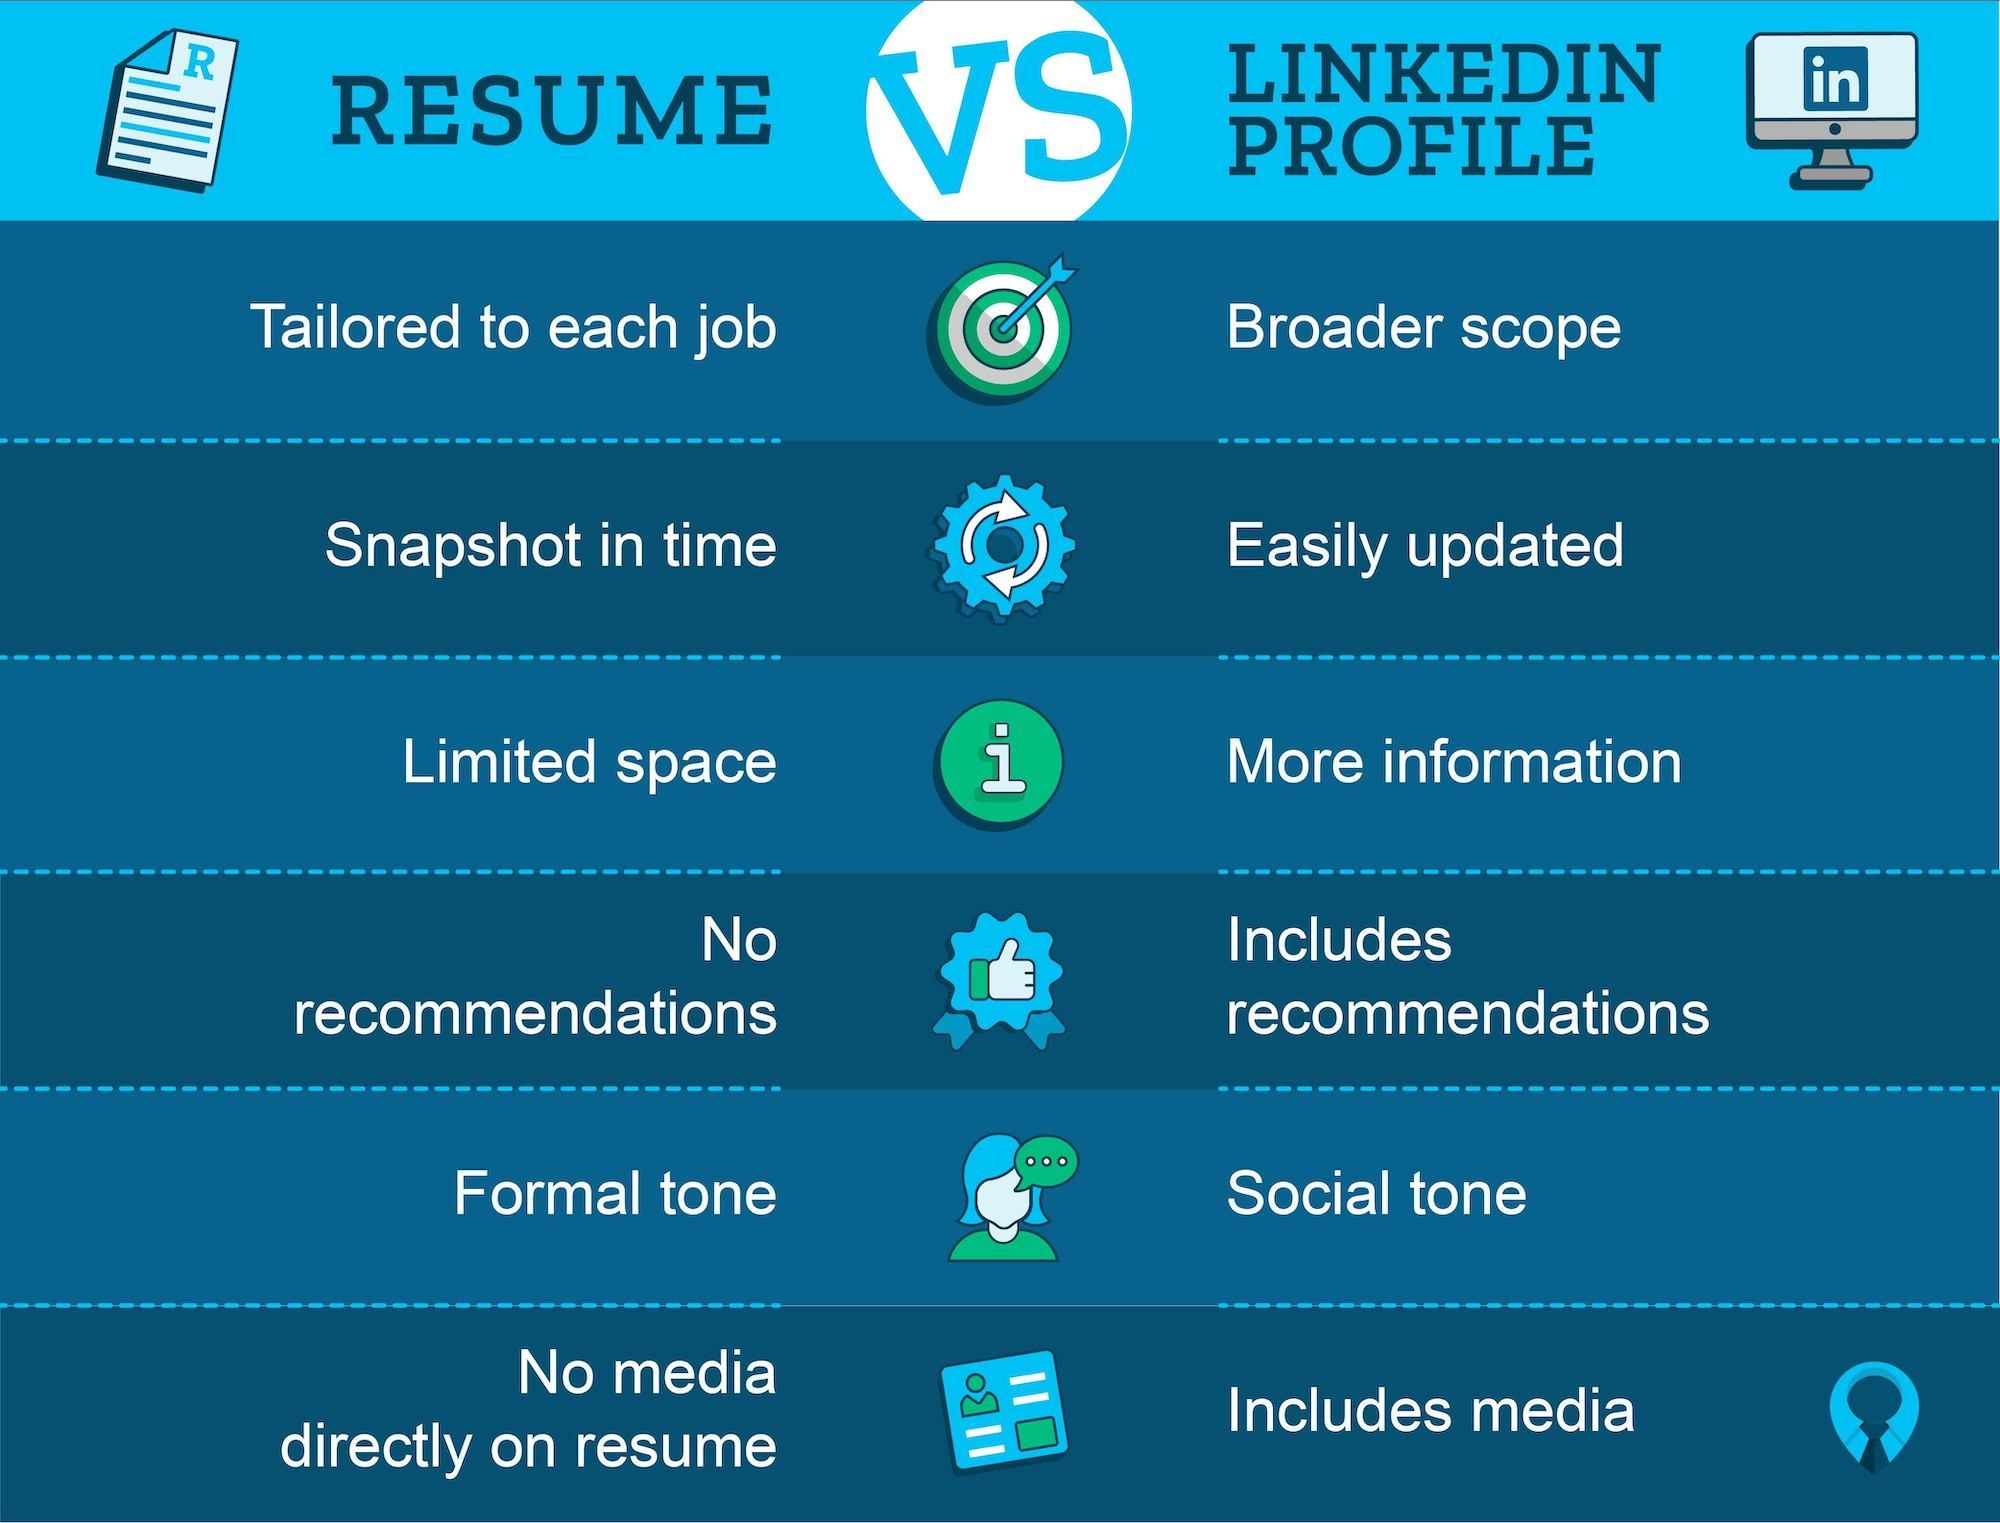 Resume vs. LinkedIn Profile